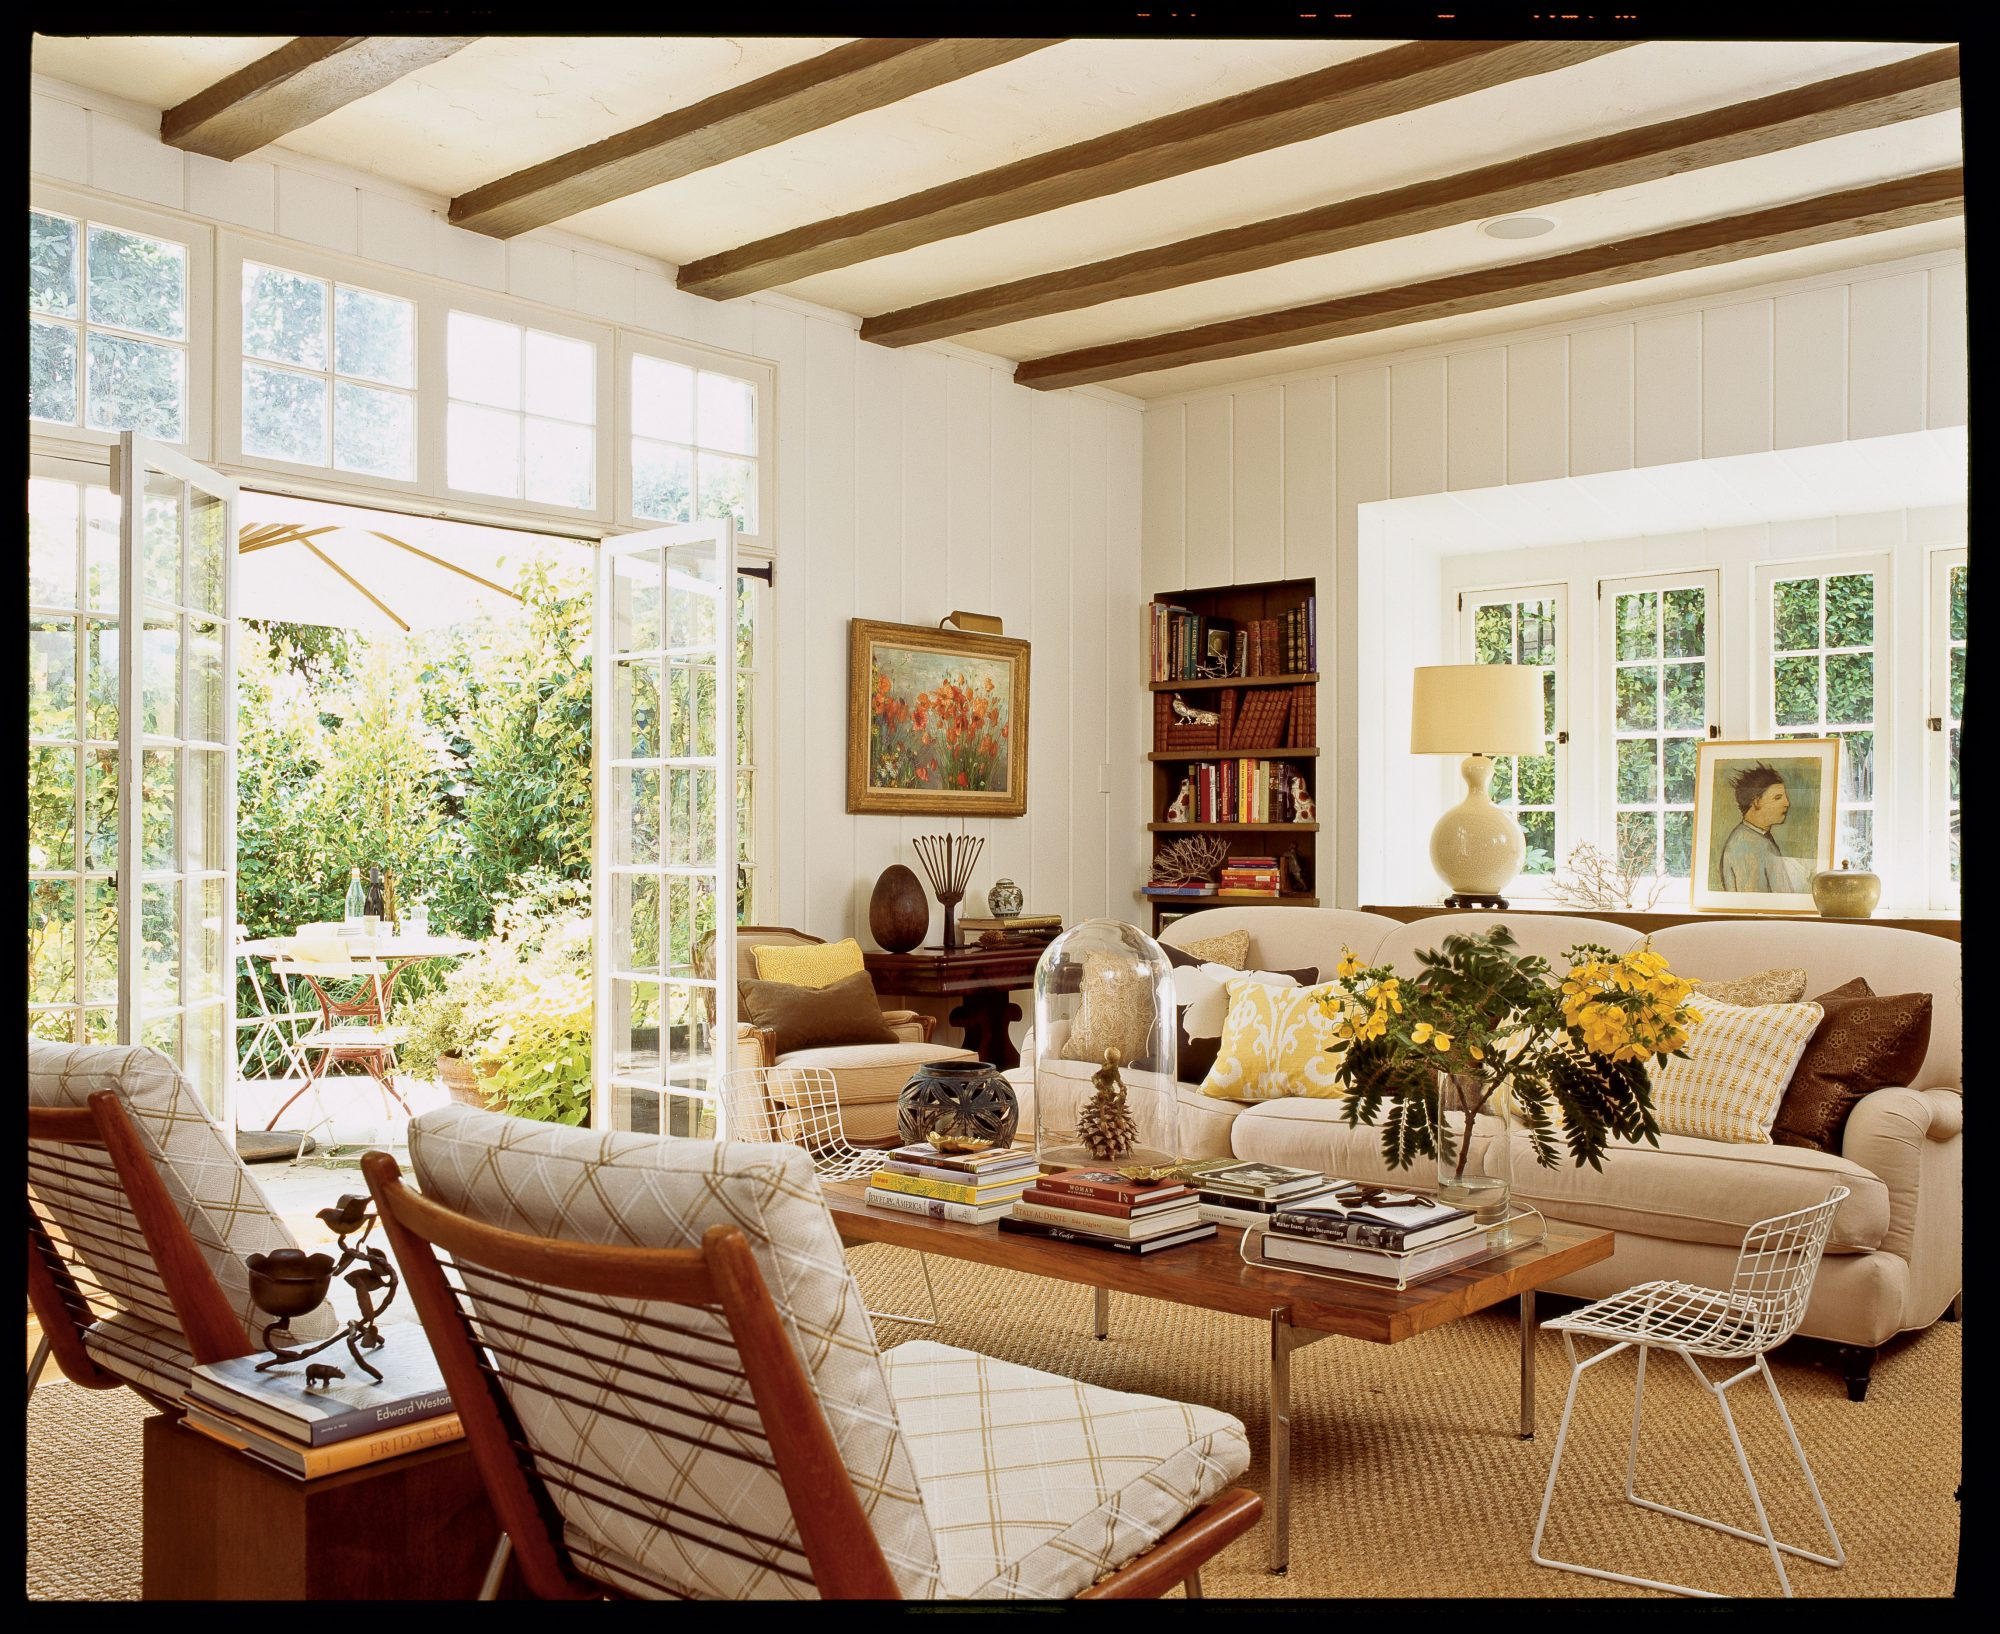 Give your home a lived-in look for a welcoming feel using kid-friendly seating, covering your tabletops with books and curios, and letting in some sunshine.